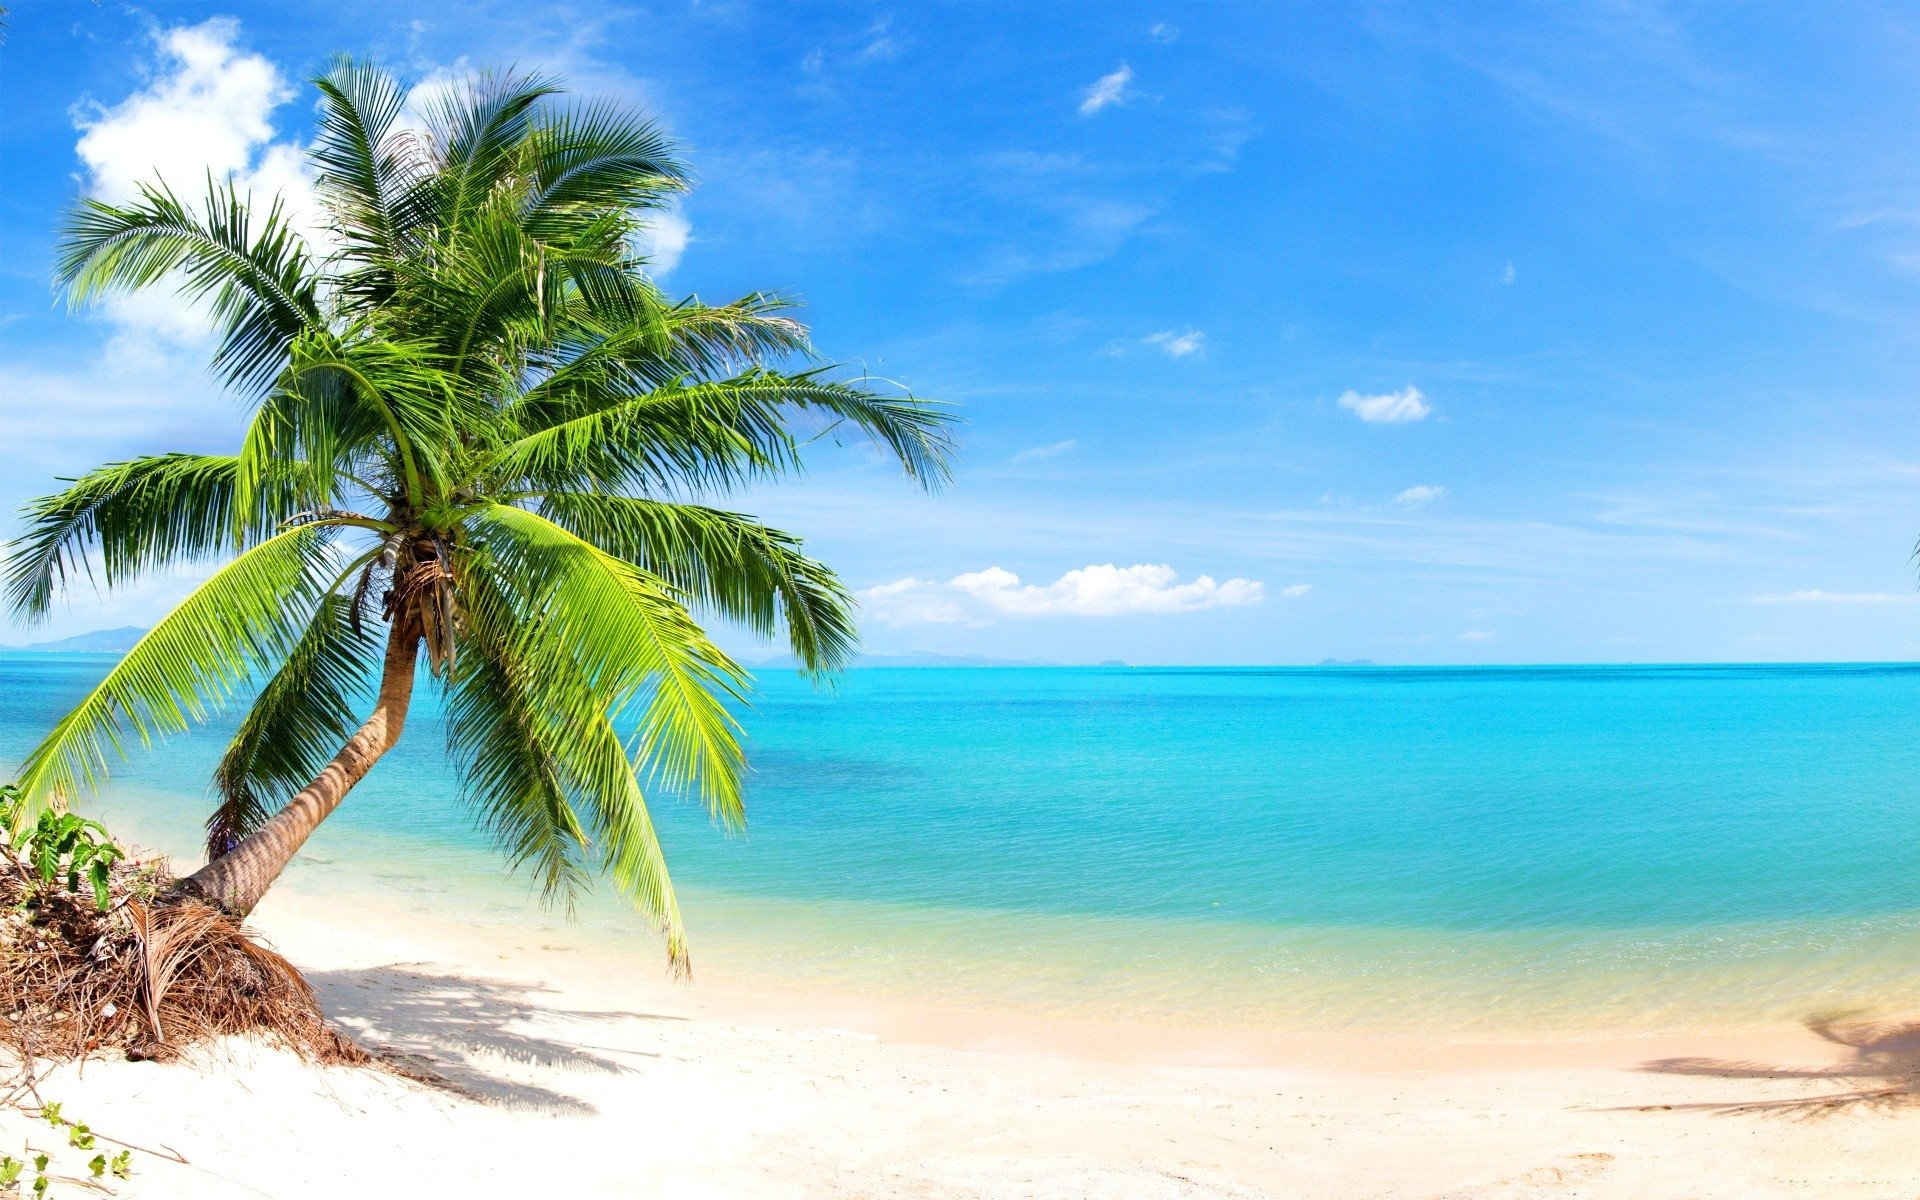 Palm Trees On The Beach: Palm Tree On Tropical Beach HD Wallpaper